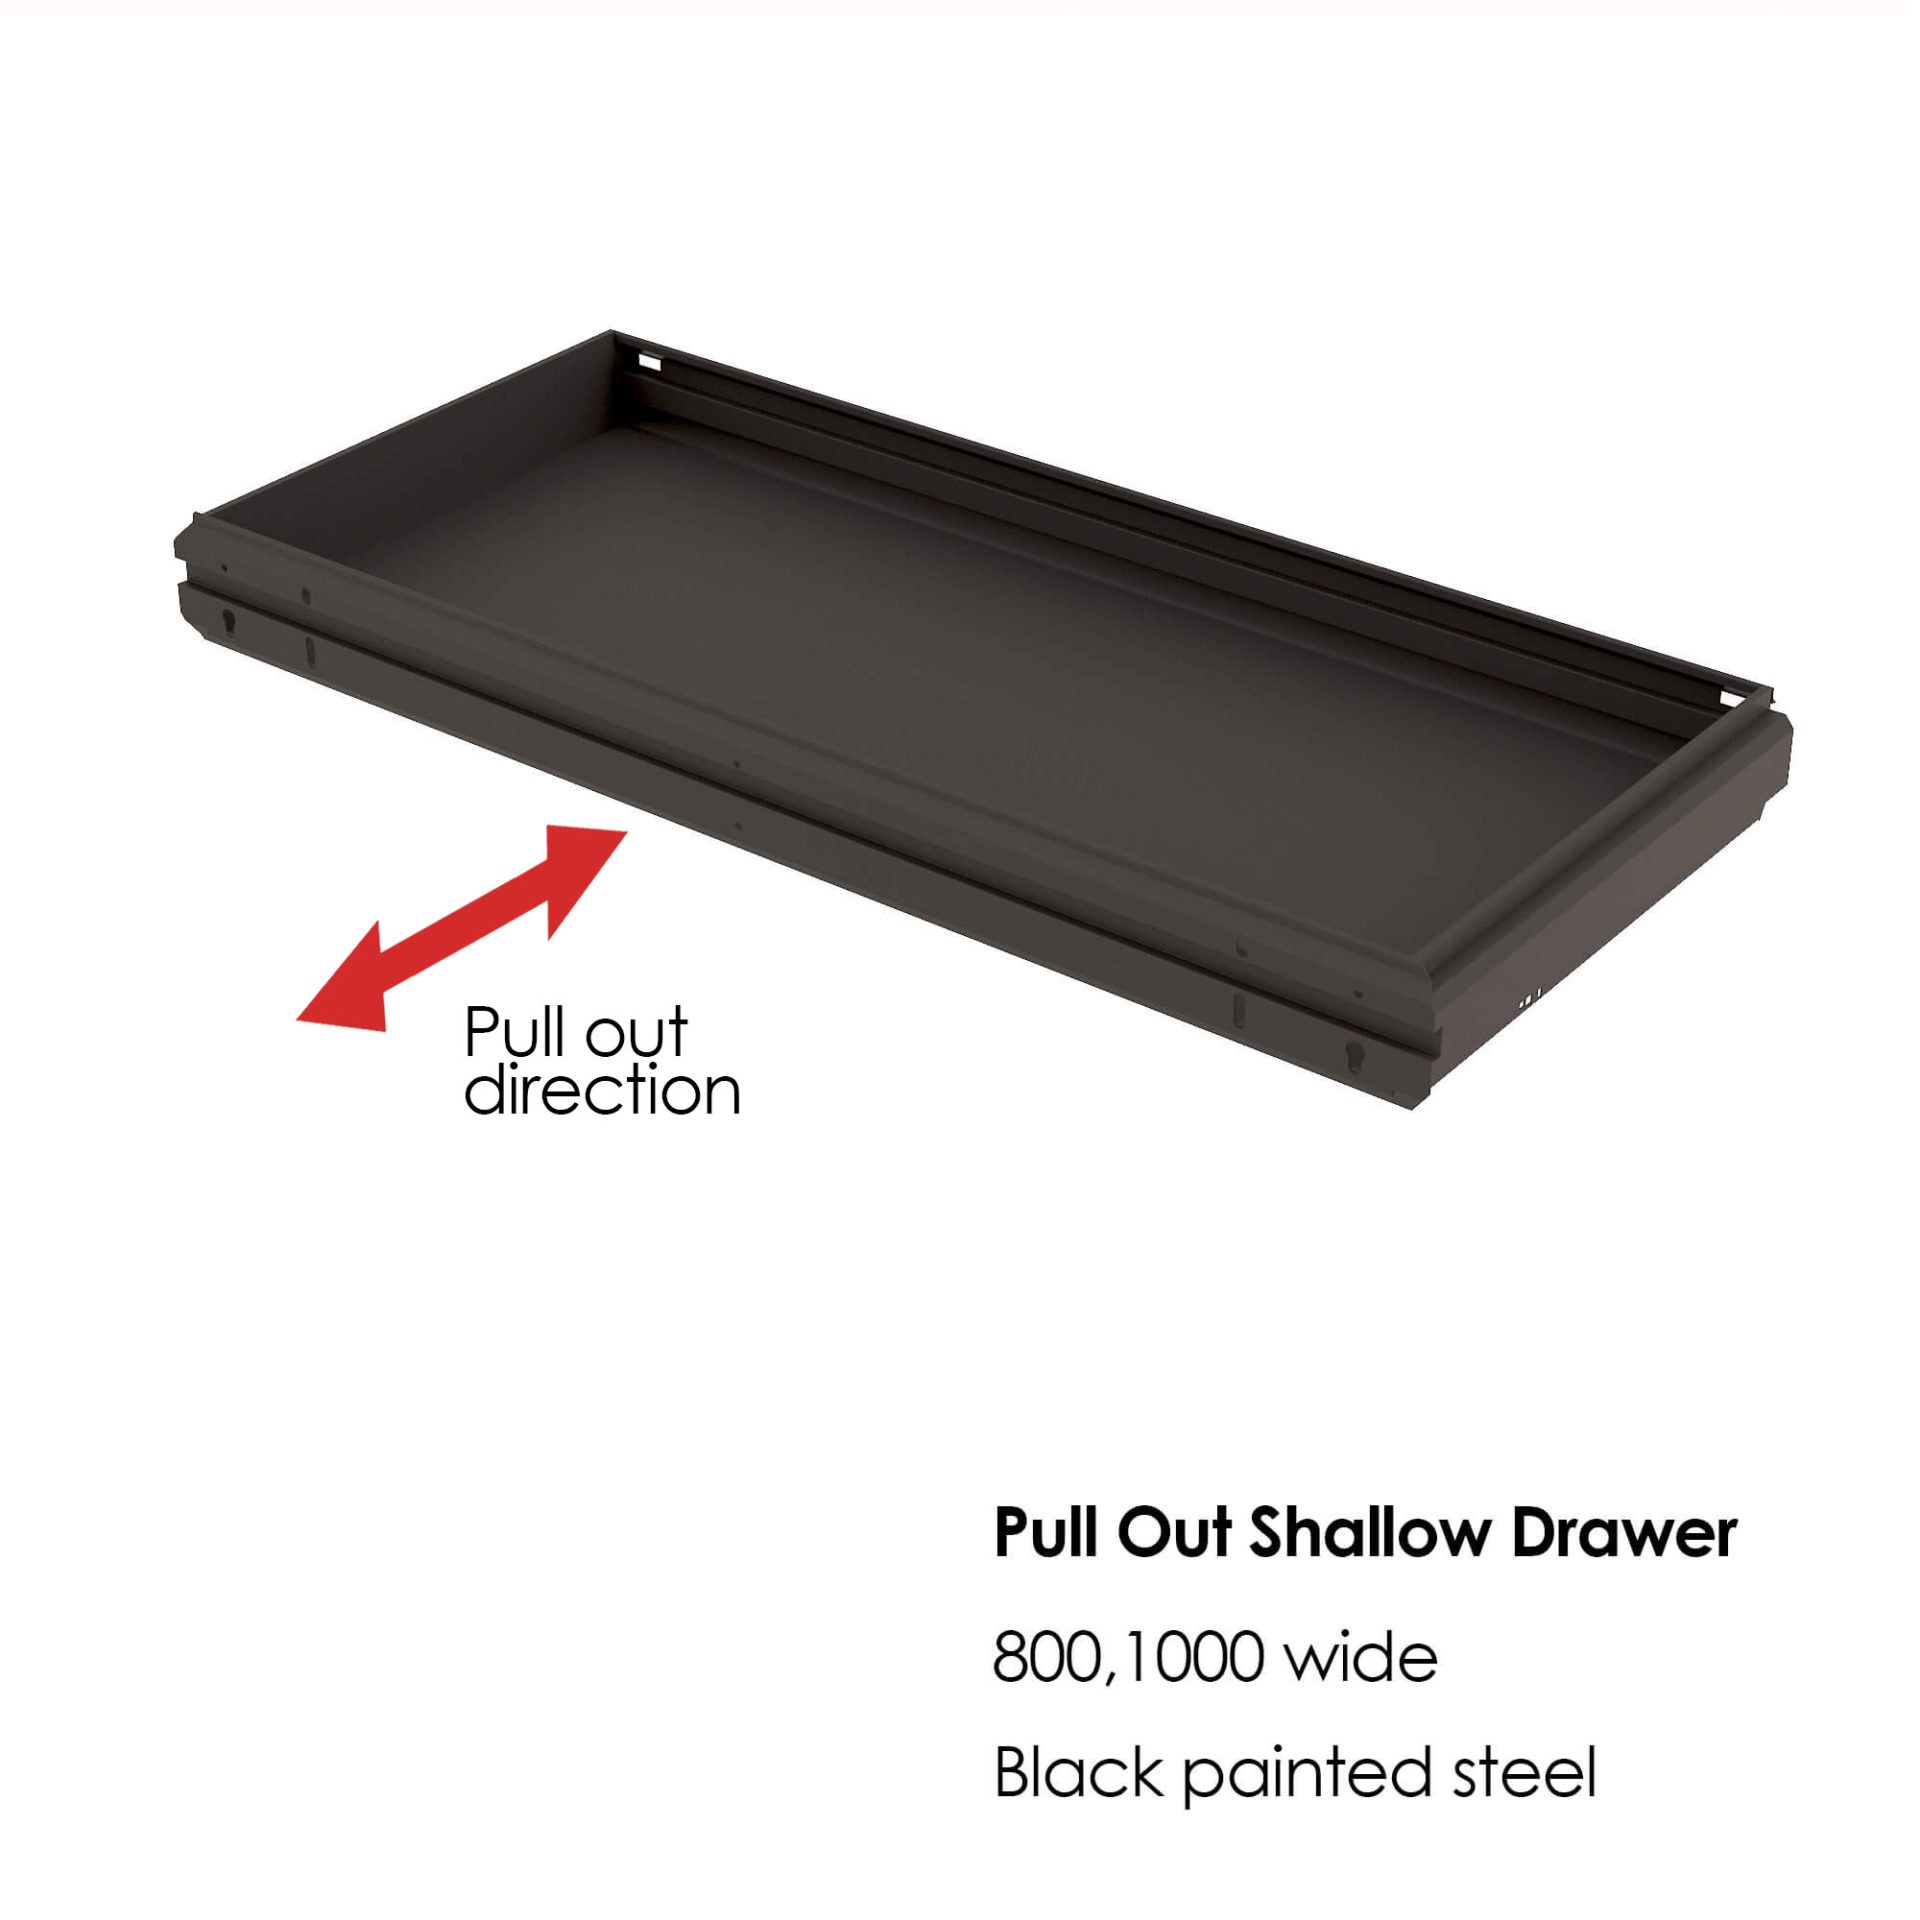 pull out shallow drawer